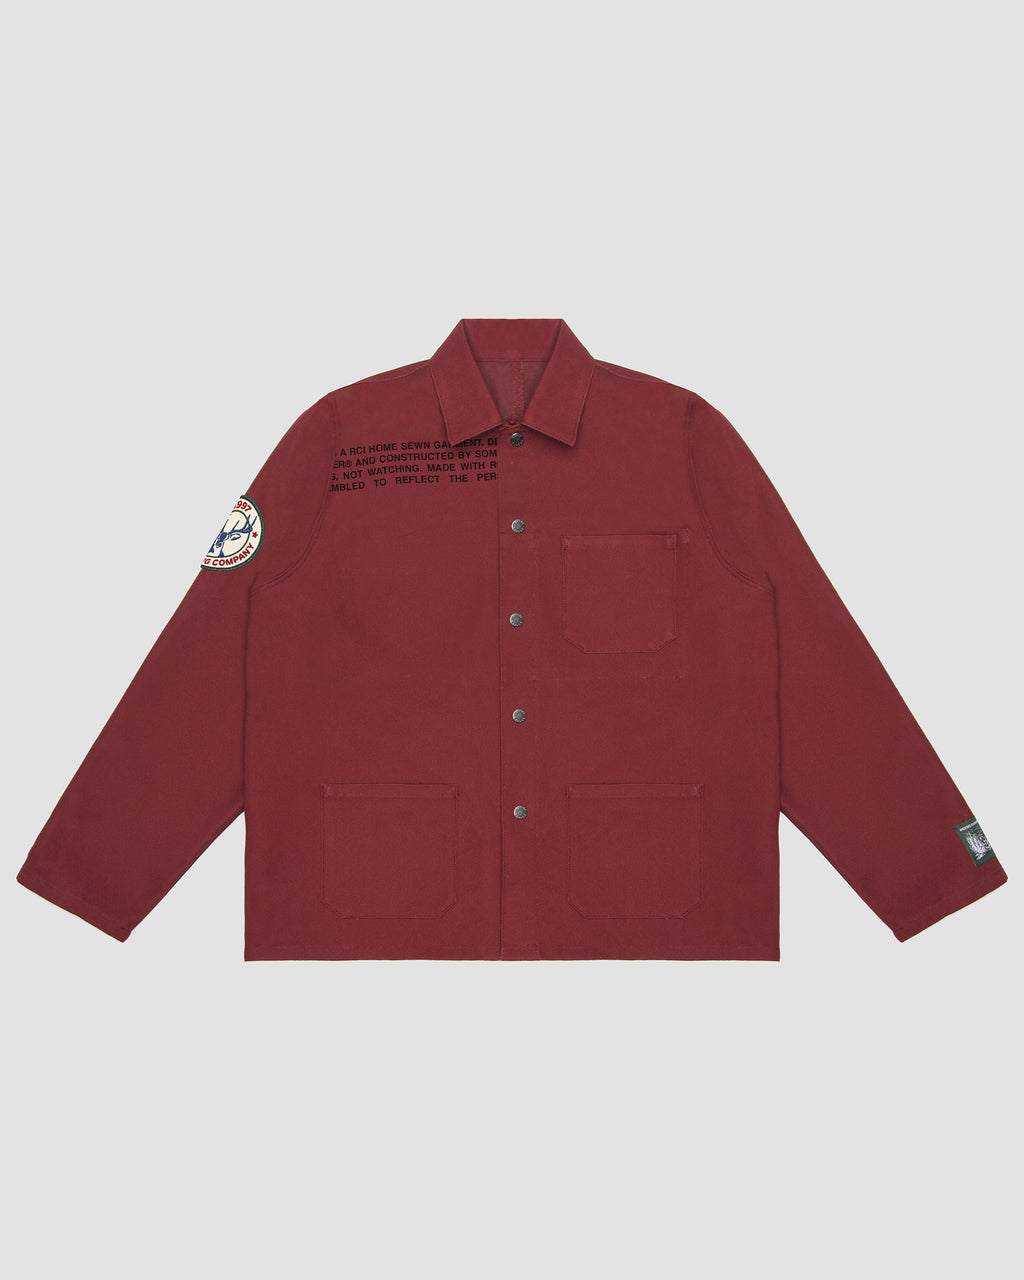 RCI Chore Coat Kit with Red Cotton Canvas